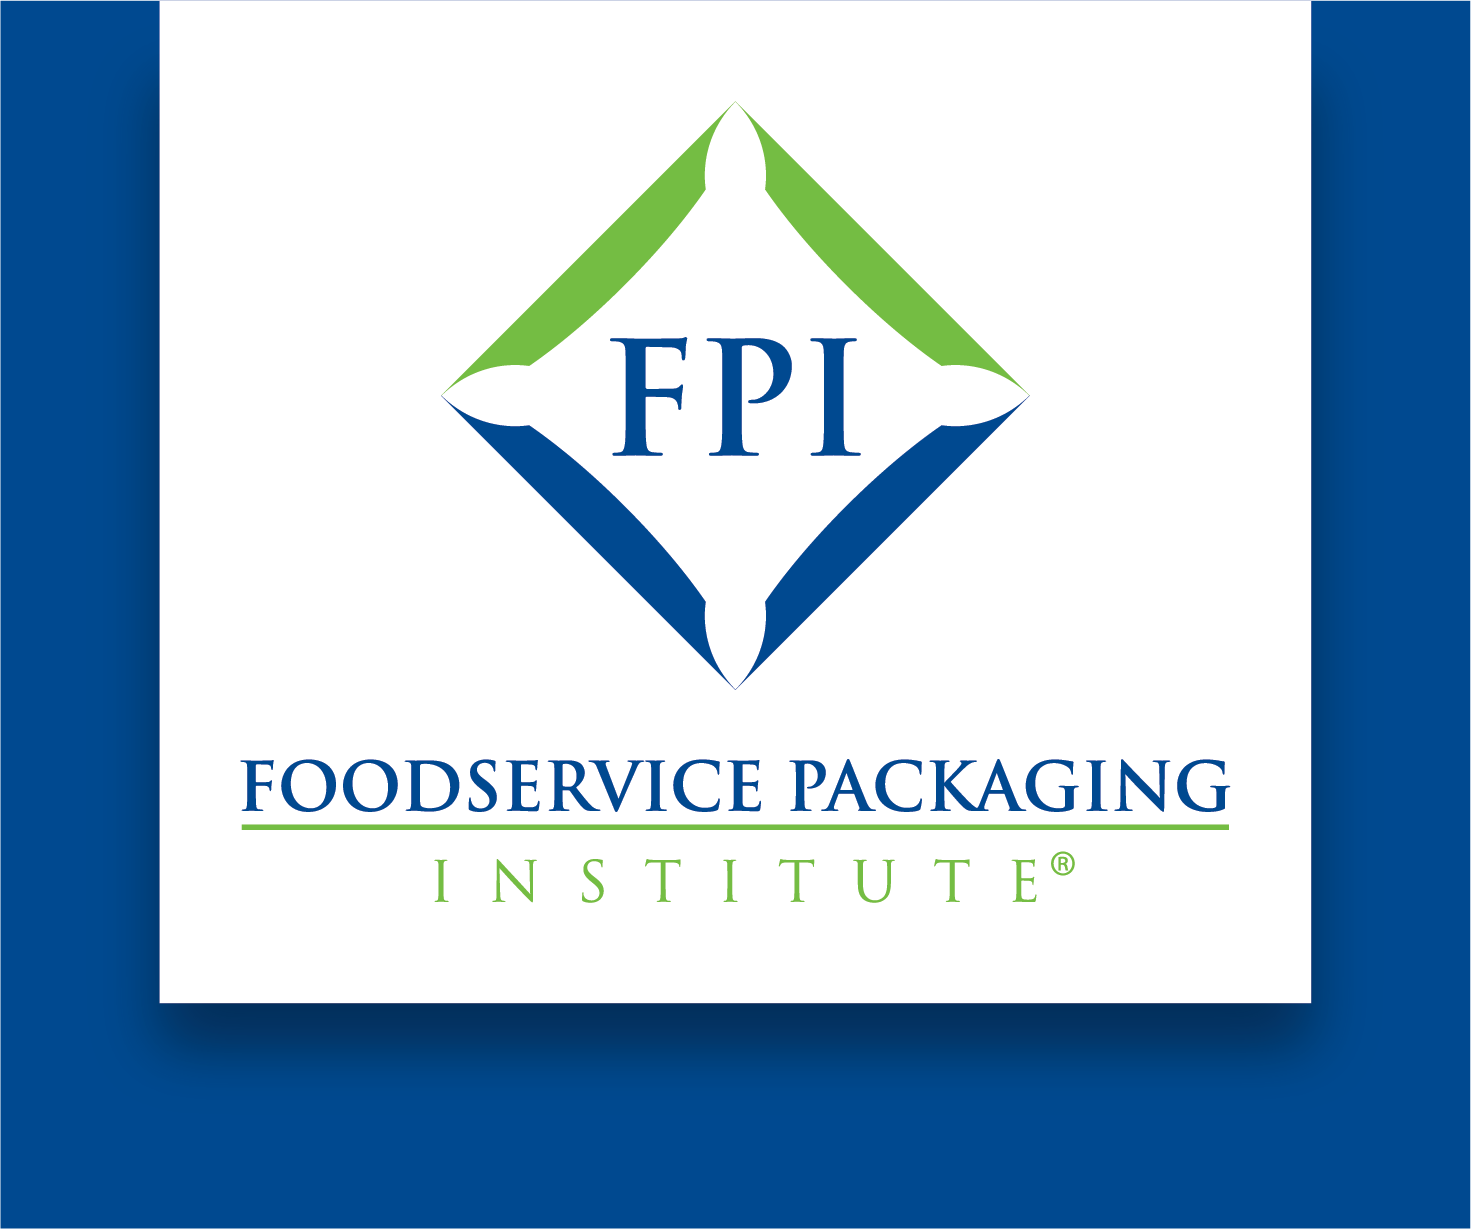 About fpi foam recycling coalition about fpi reheart Image collections